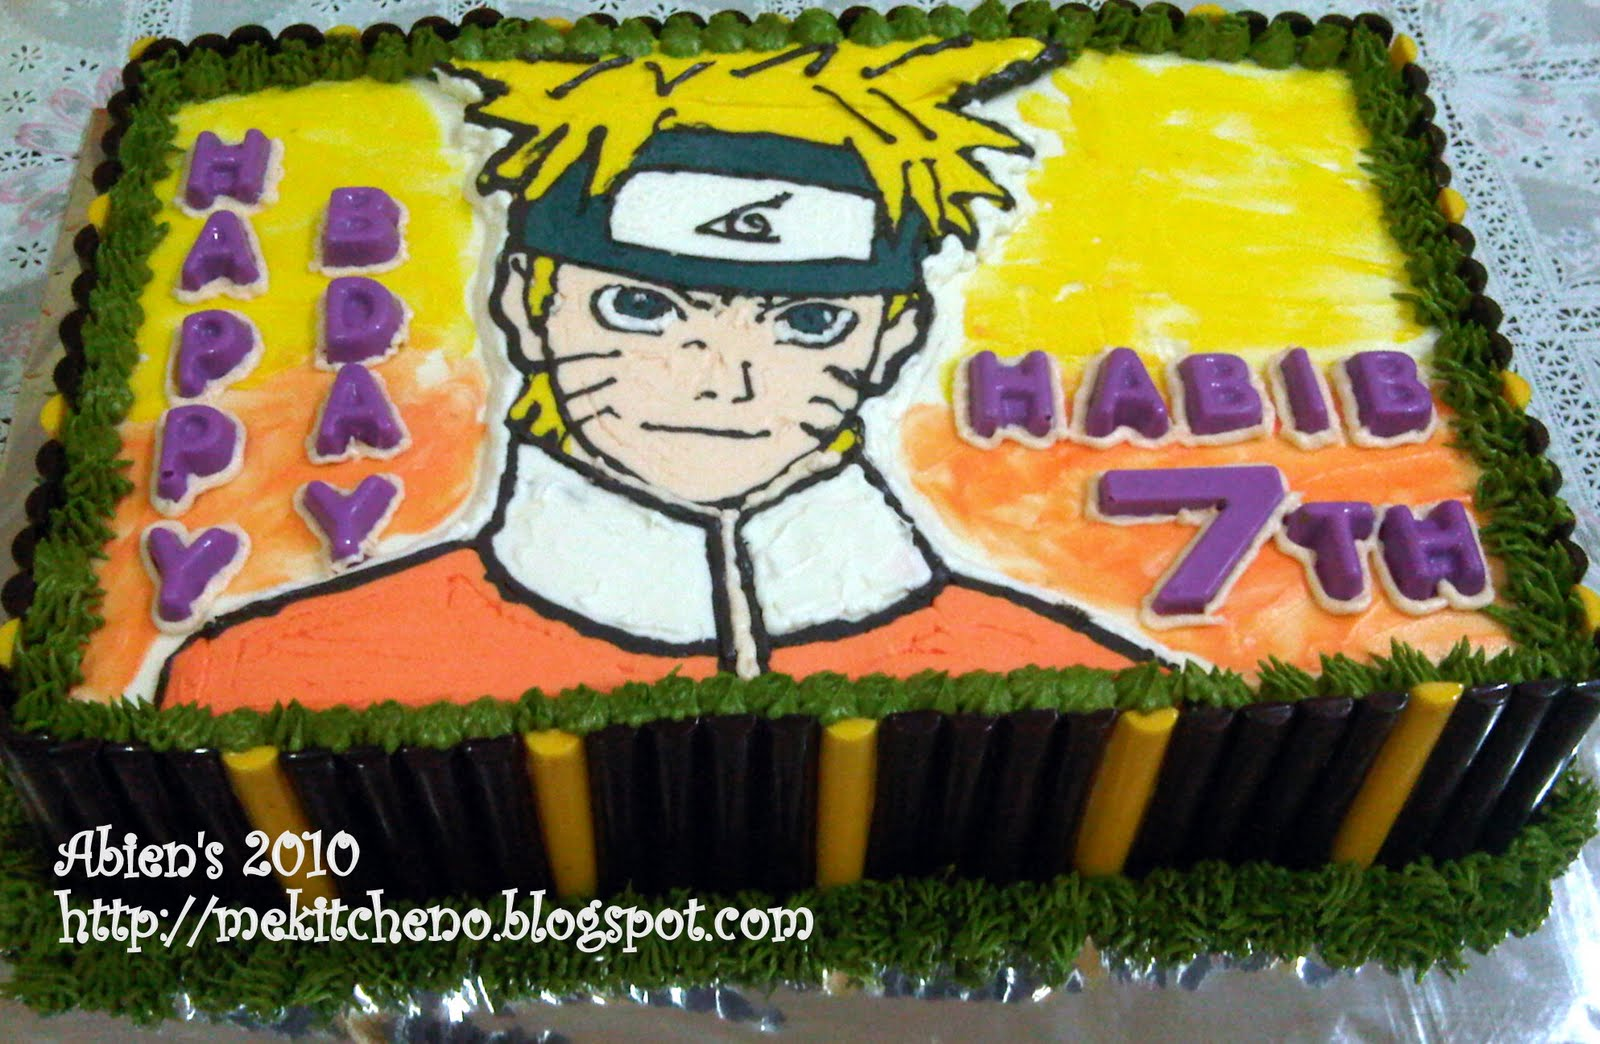 Kue Ulang Tahun Cake Ideas And Designs Page 2